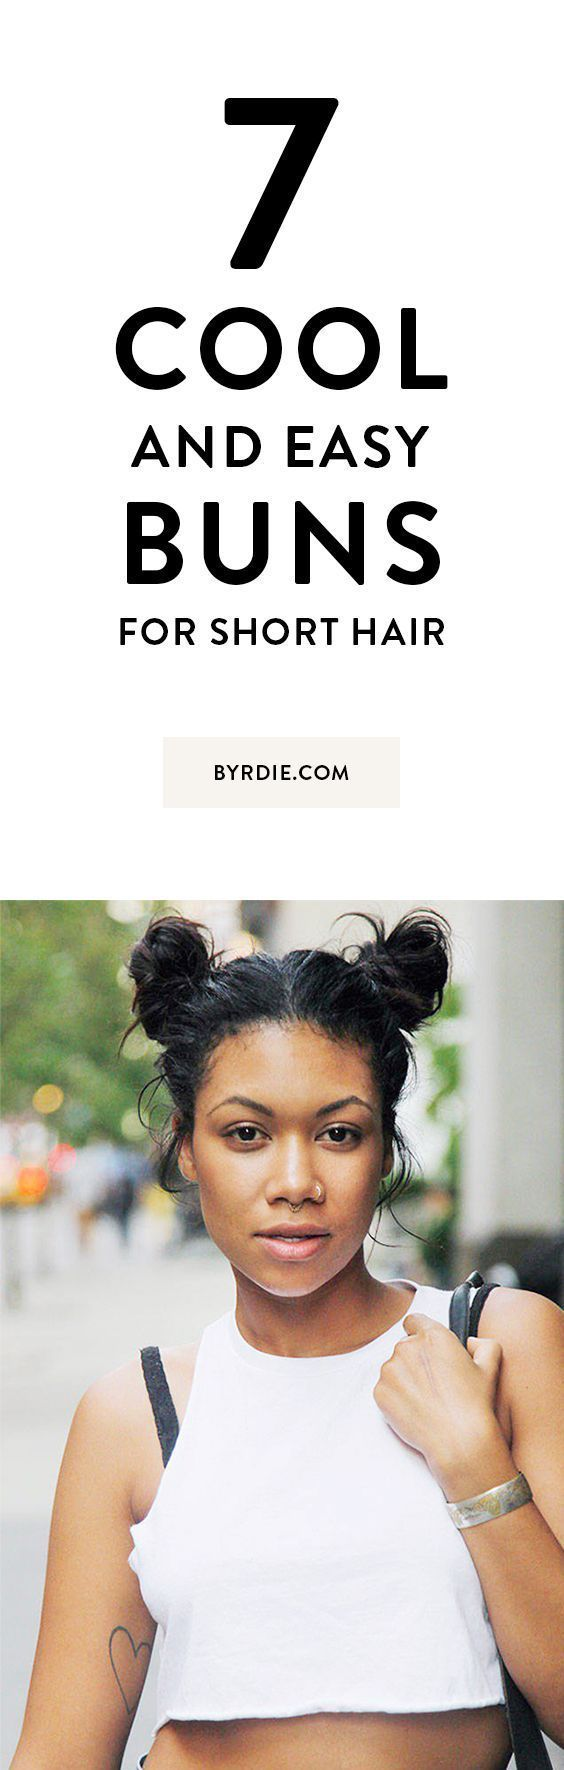 cool and easy buns that work for short hair easy hairstyles